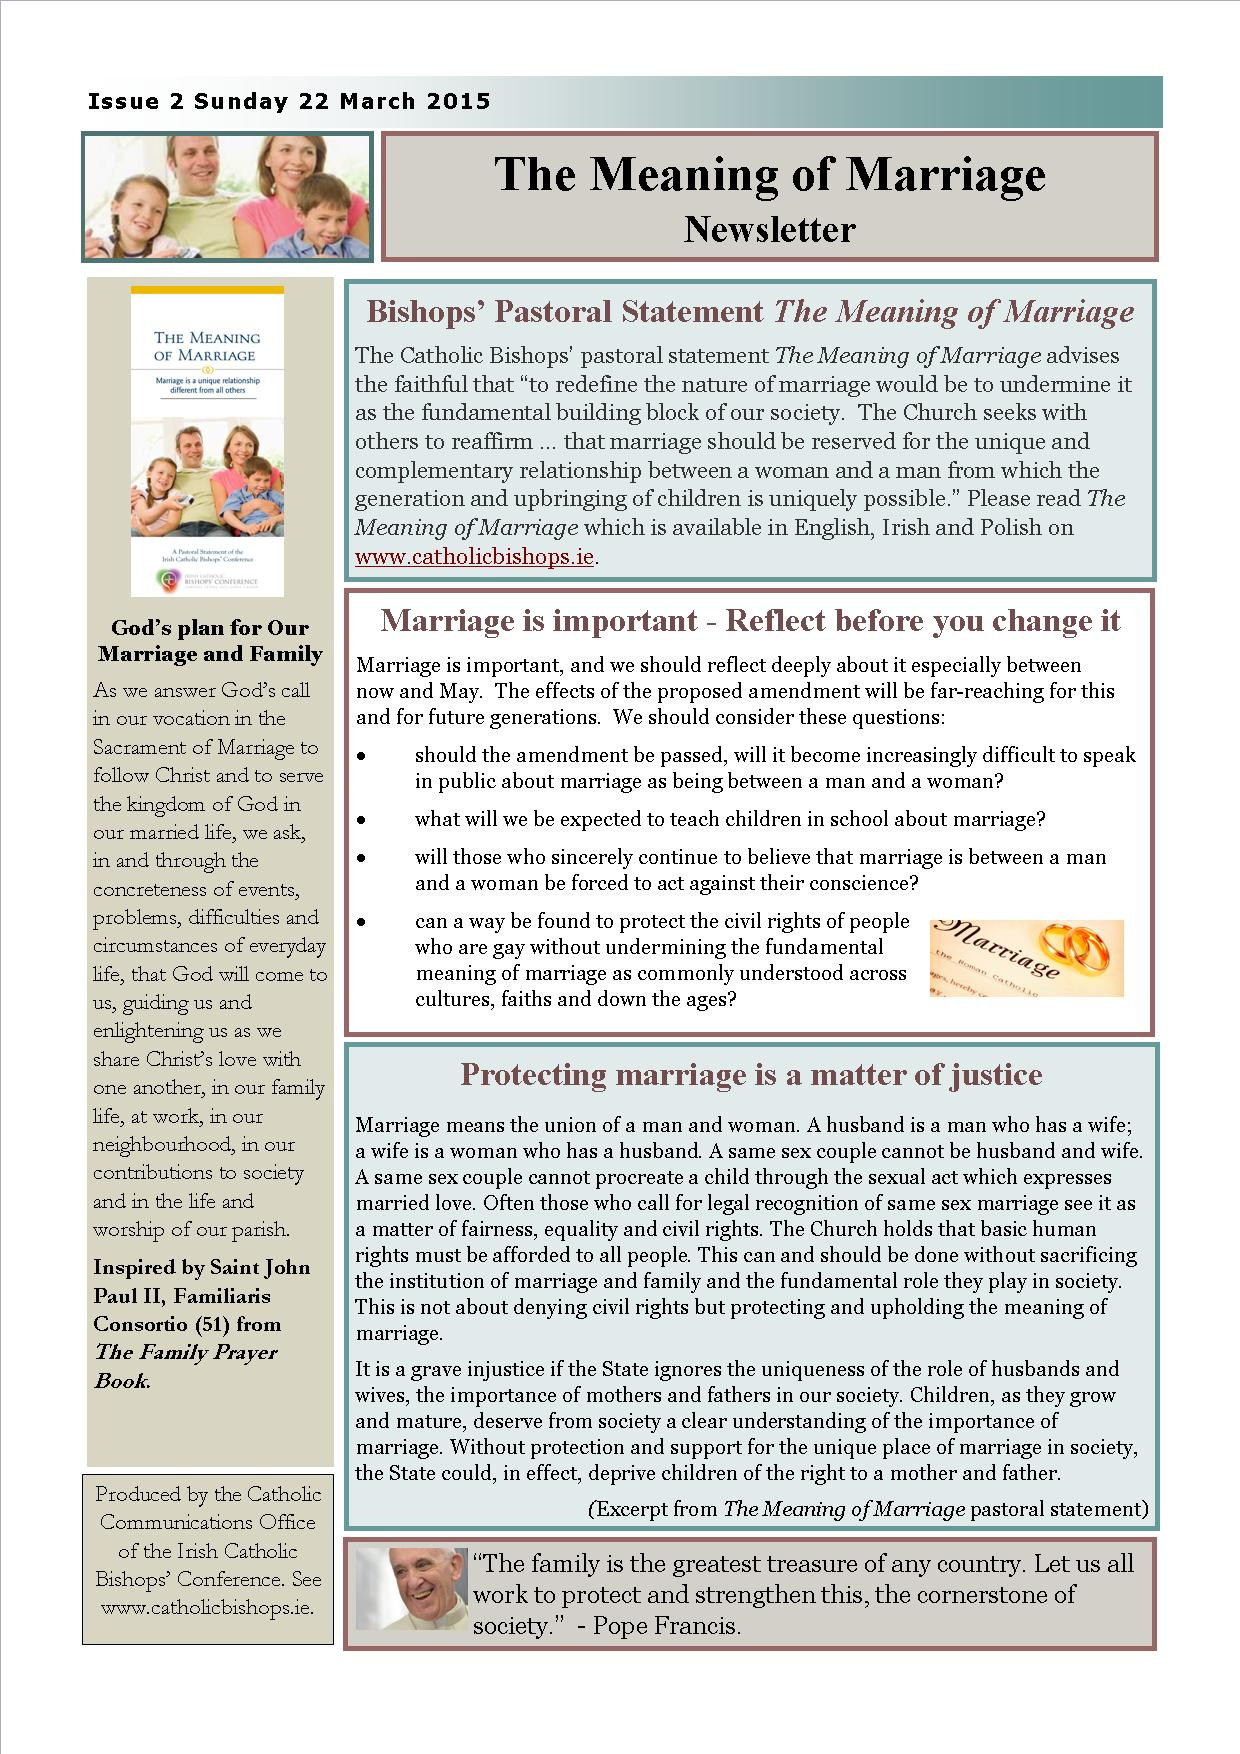 The Meaning of Marriage newsletter Issue 2 - 22 March 2015